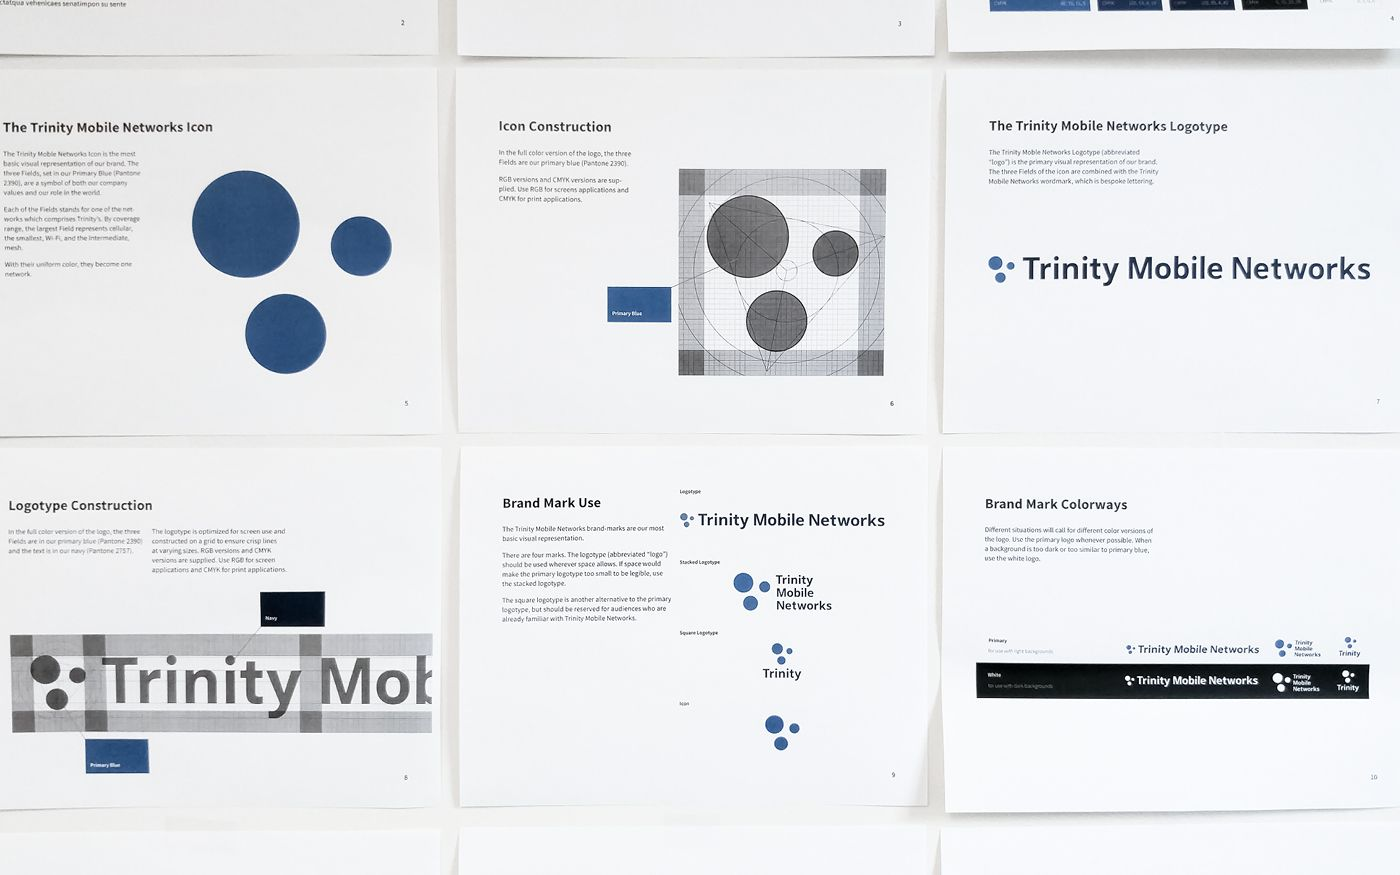 Pages from the Trinity Mobile Networks brand guidelines